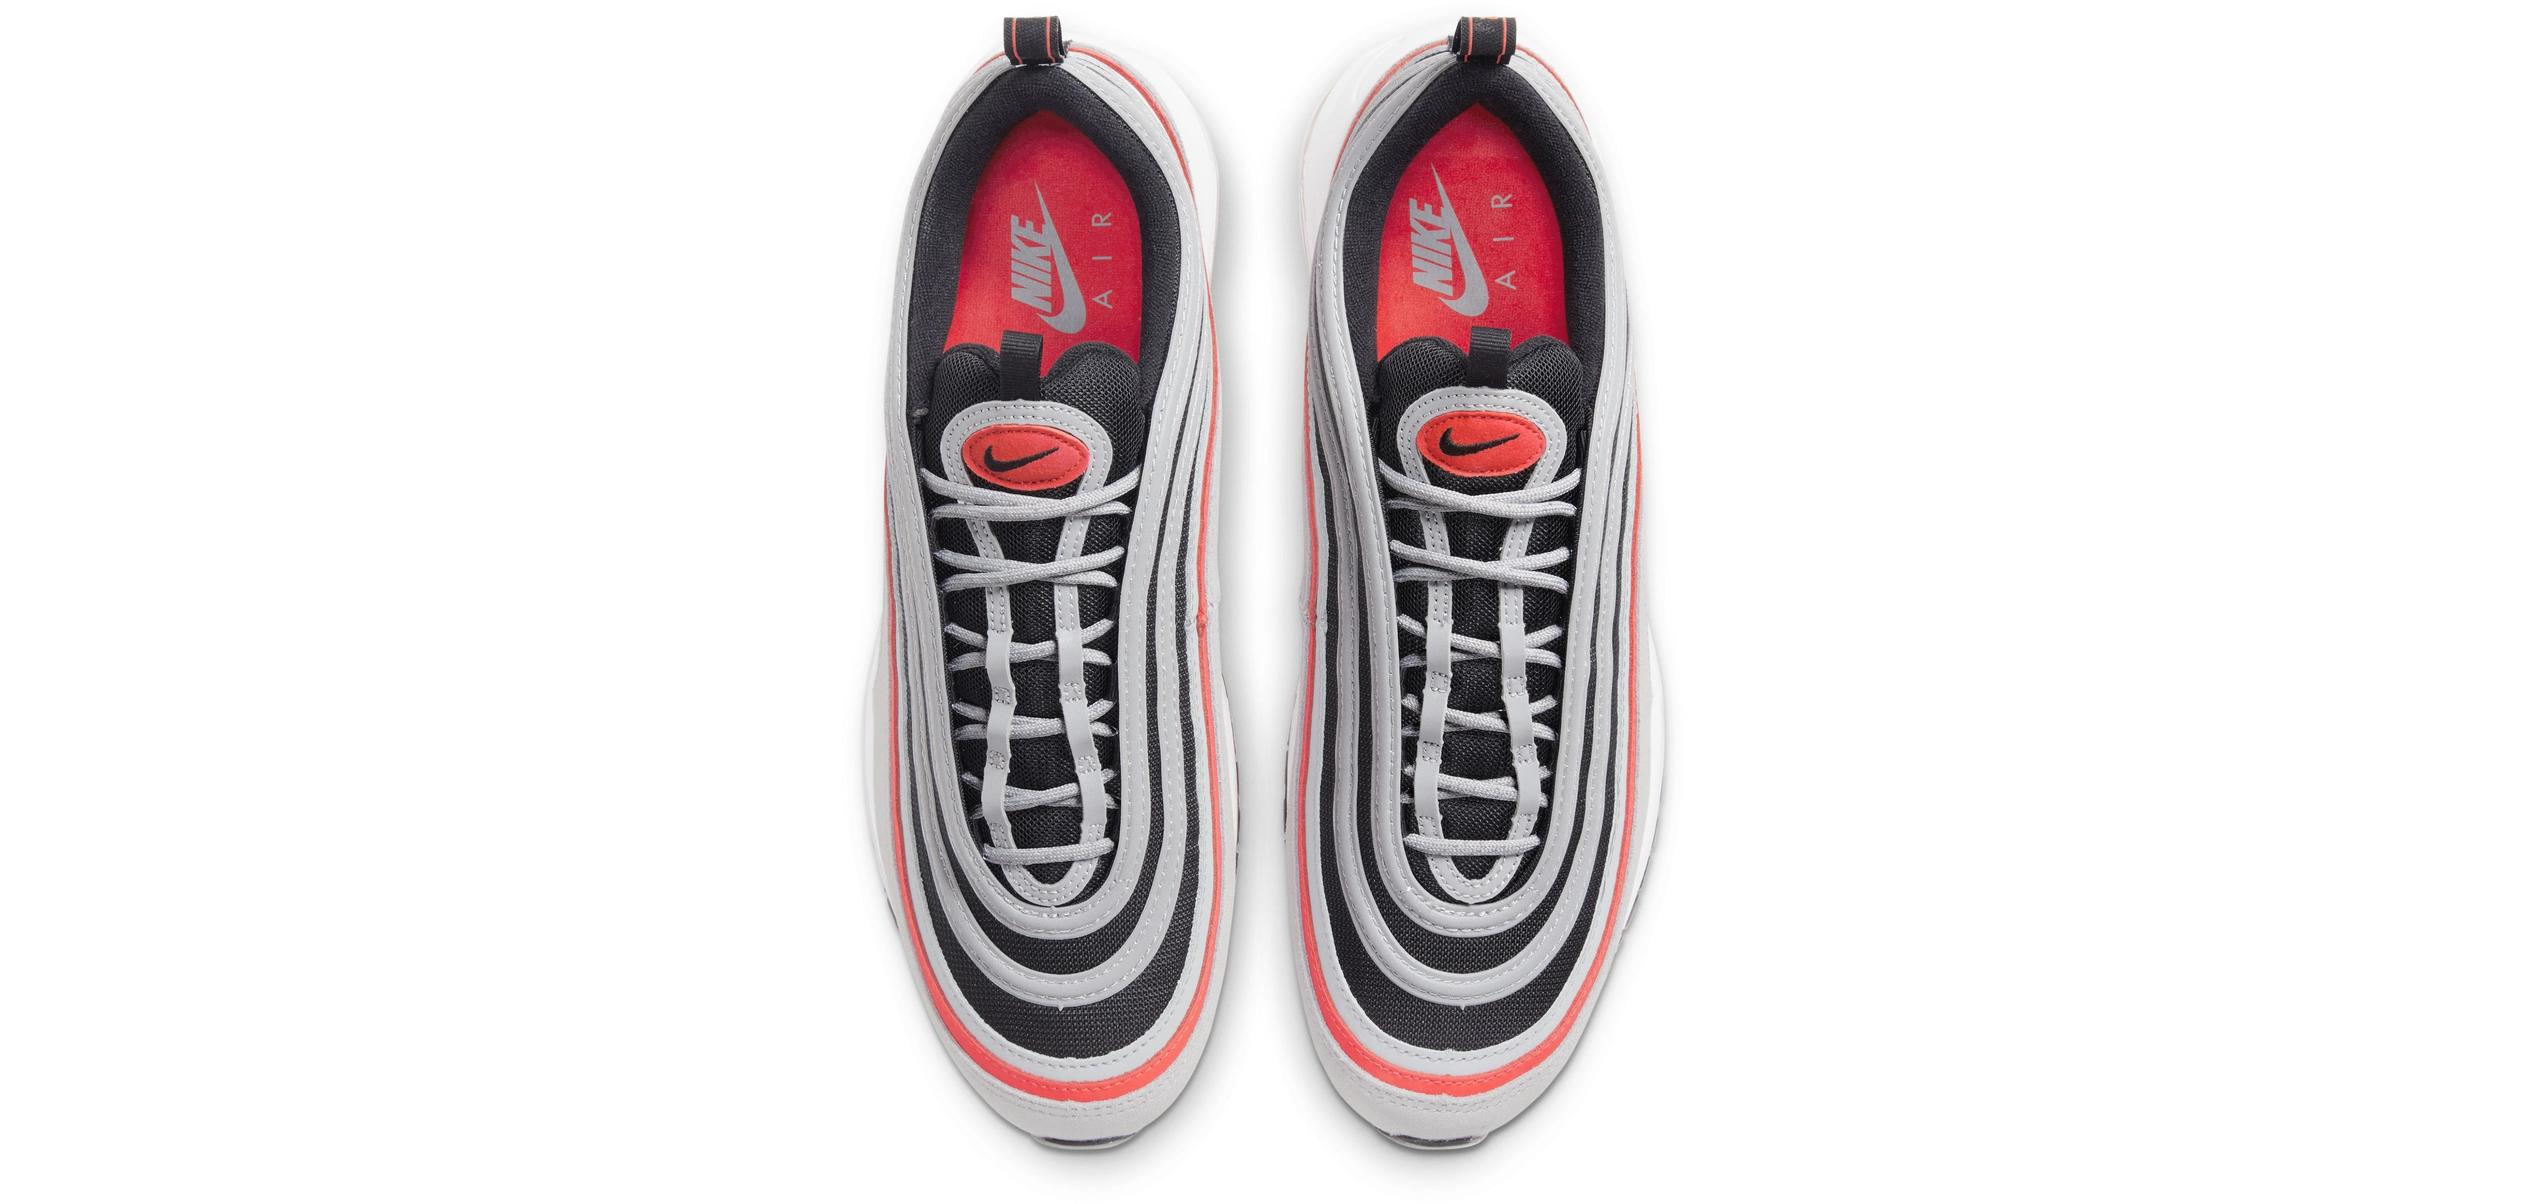 Nike Air Max 97 Wolf Grey/Black/White/Radiant Red